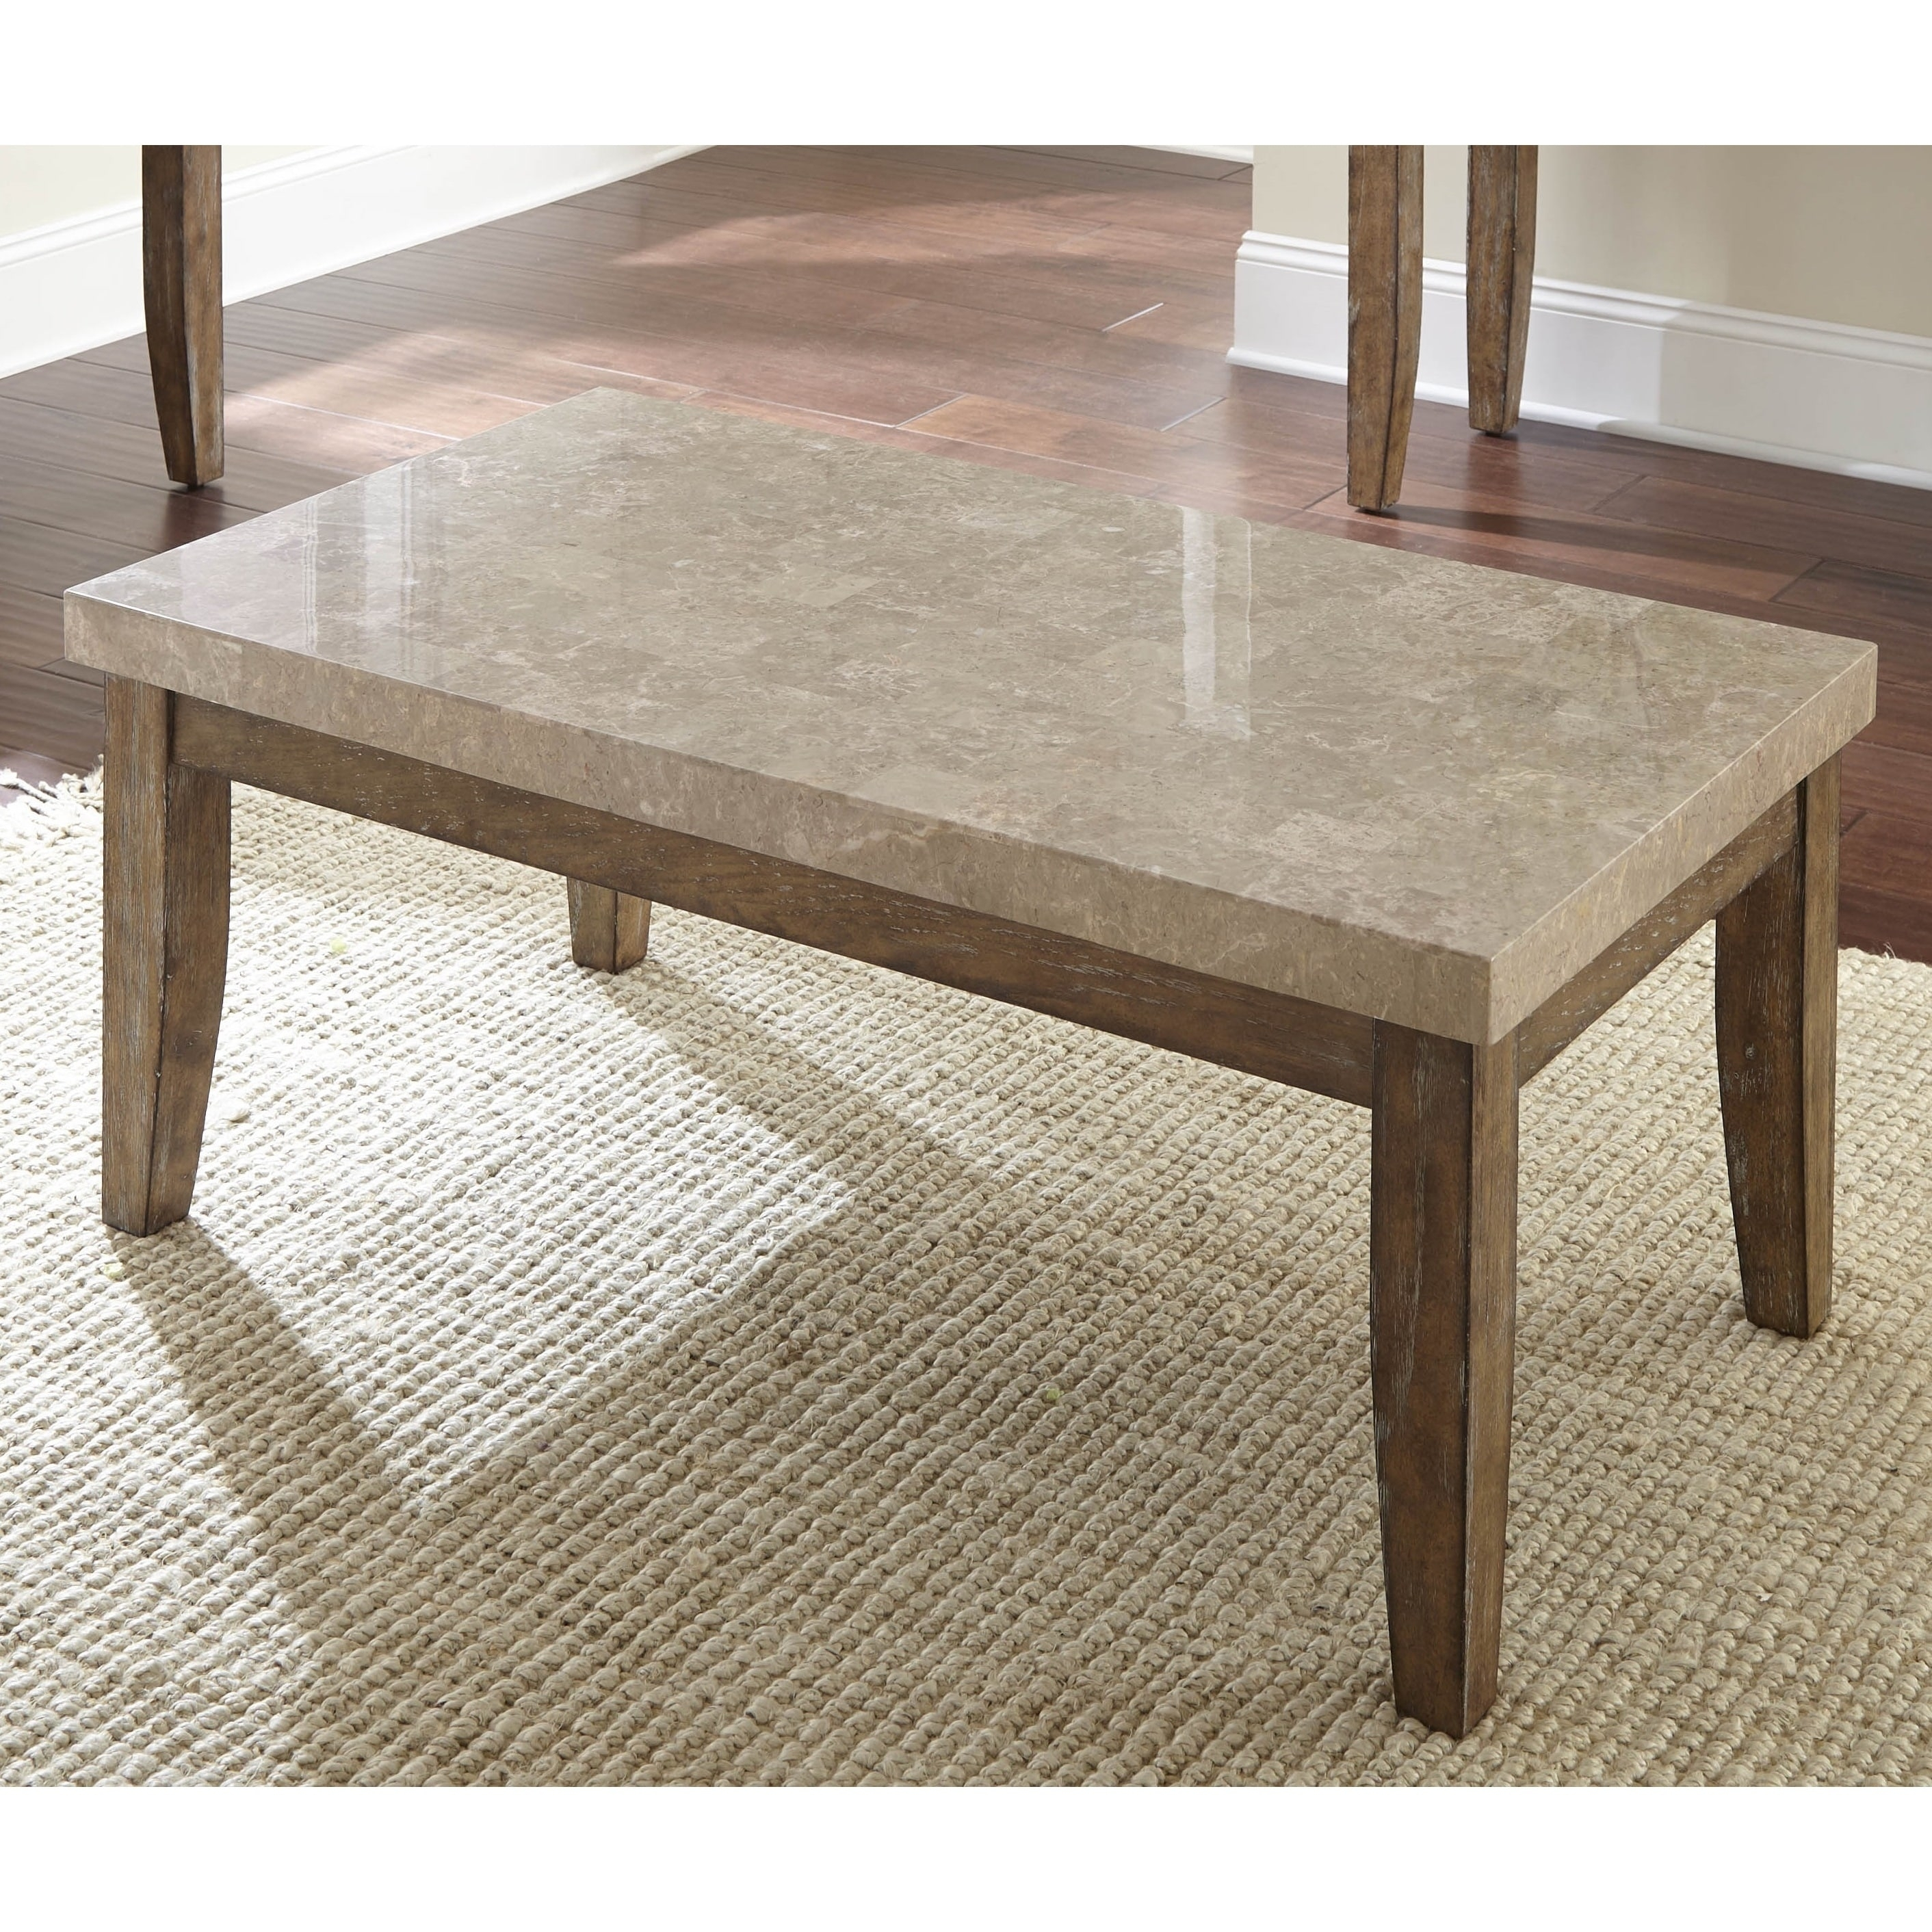 Fulham Marble Top Coffee Tablegreyson Living - Free Shipping regarding Element Ivory Rectangular Coffee Tables (Image 8 of 30)